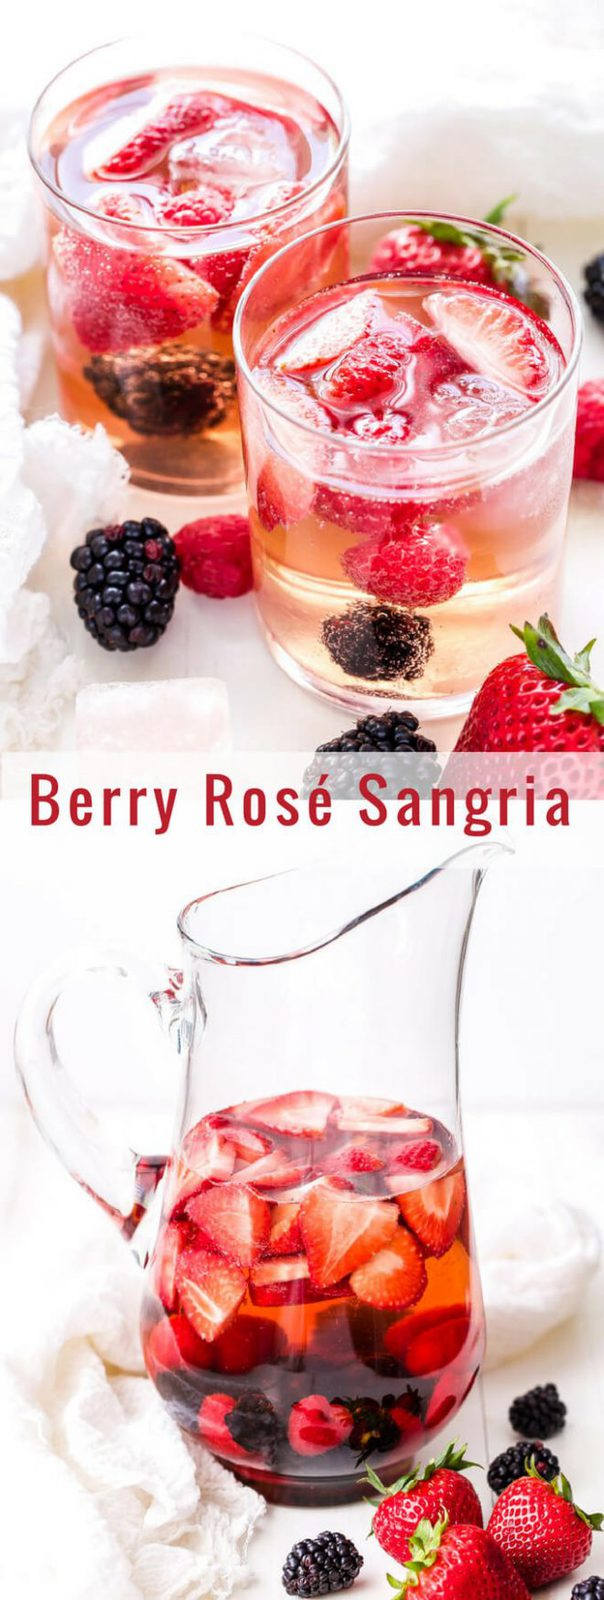 Berry Rosé Sangria is the perfect summer sipper! Sweet, but not too sweet and loaded with tons fresh berries. It will be a hit at all your summer get togethers! #sangria #rosé #berries #drink #cocktail #wine